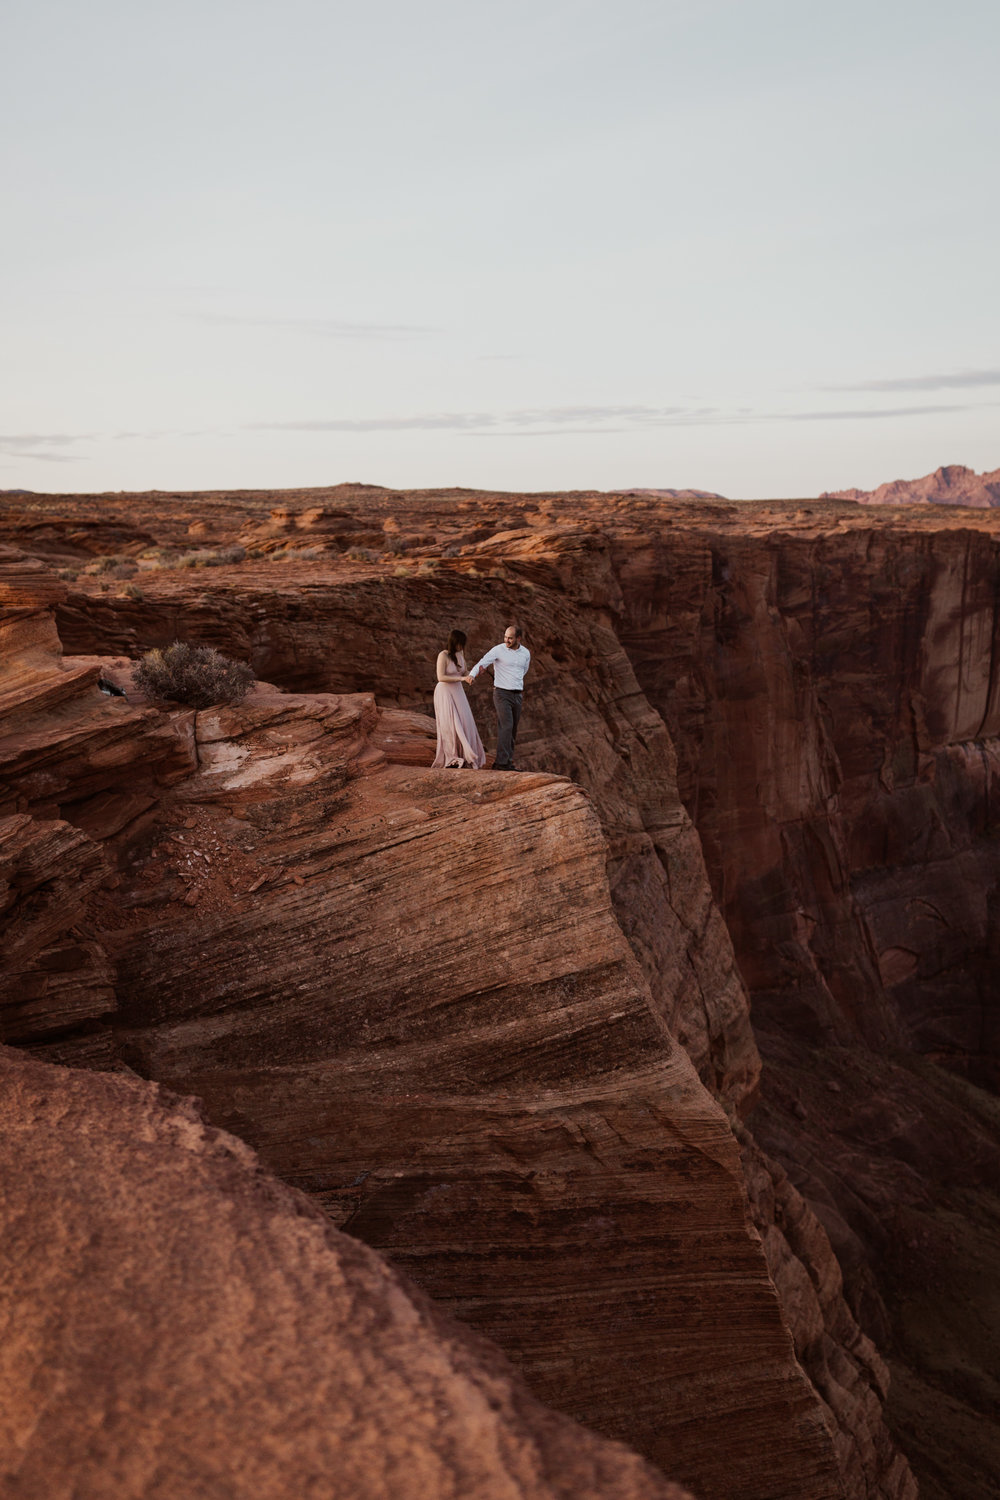 glen-canyon-arizona-adventure-engagements-14.jpg